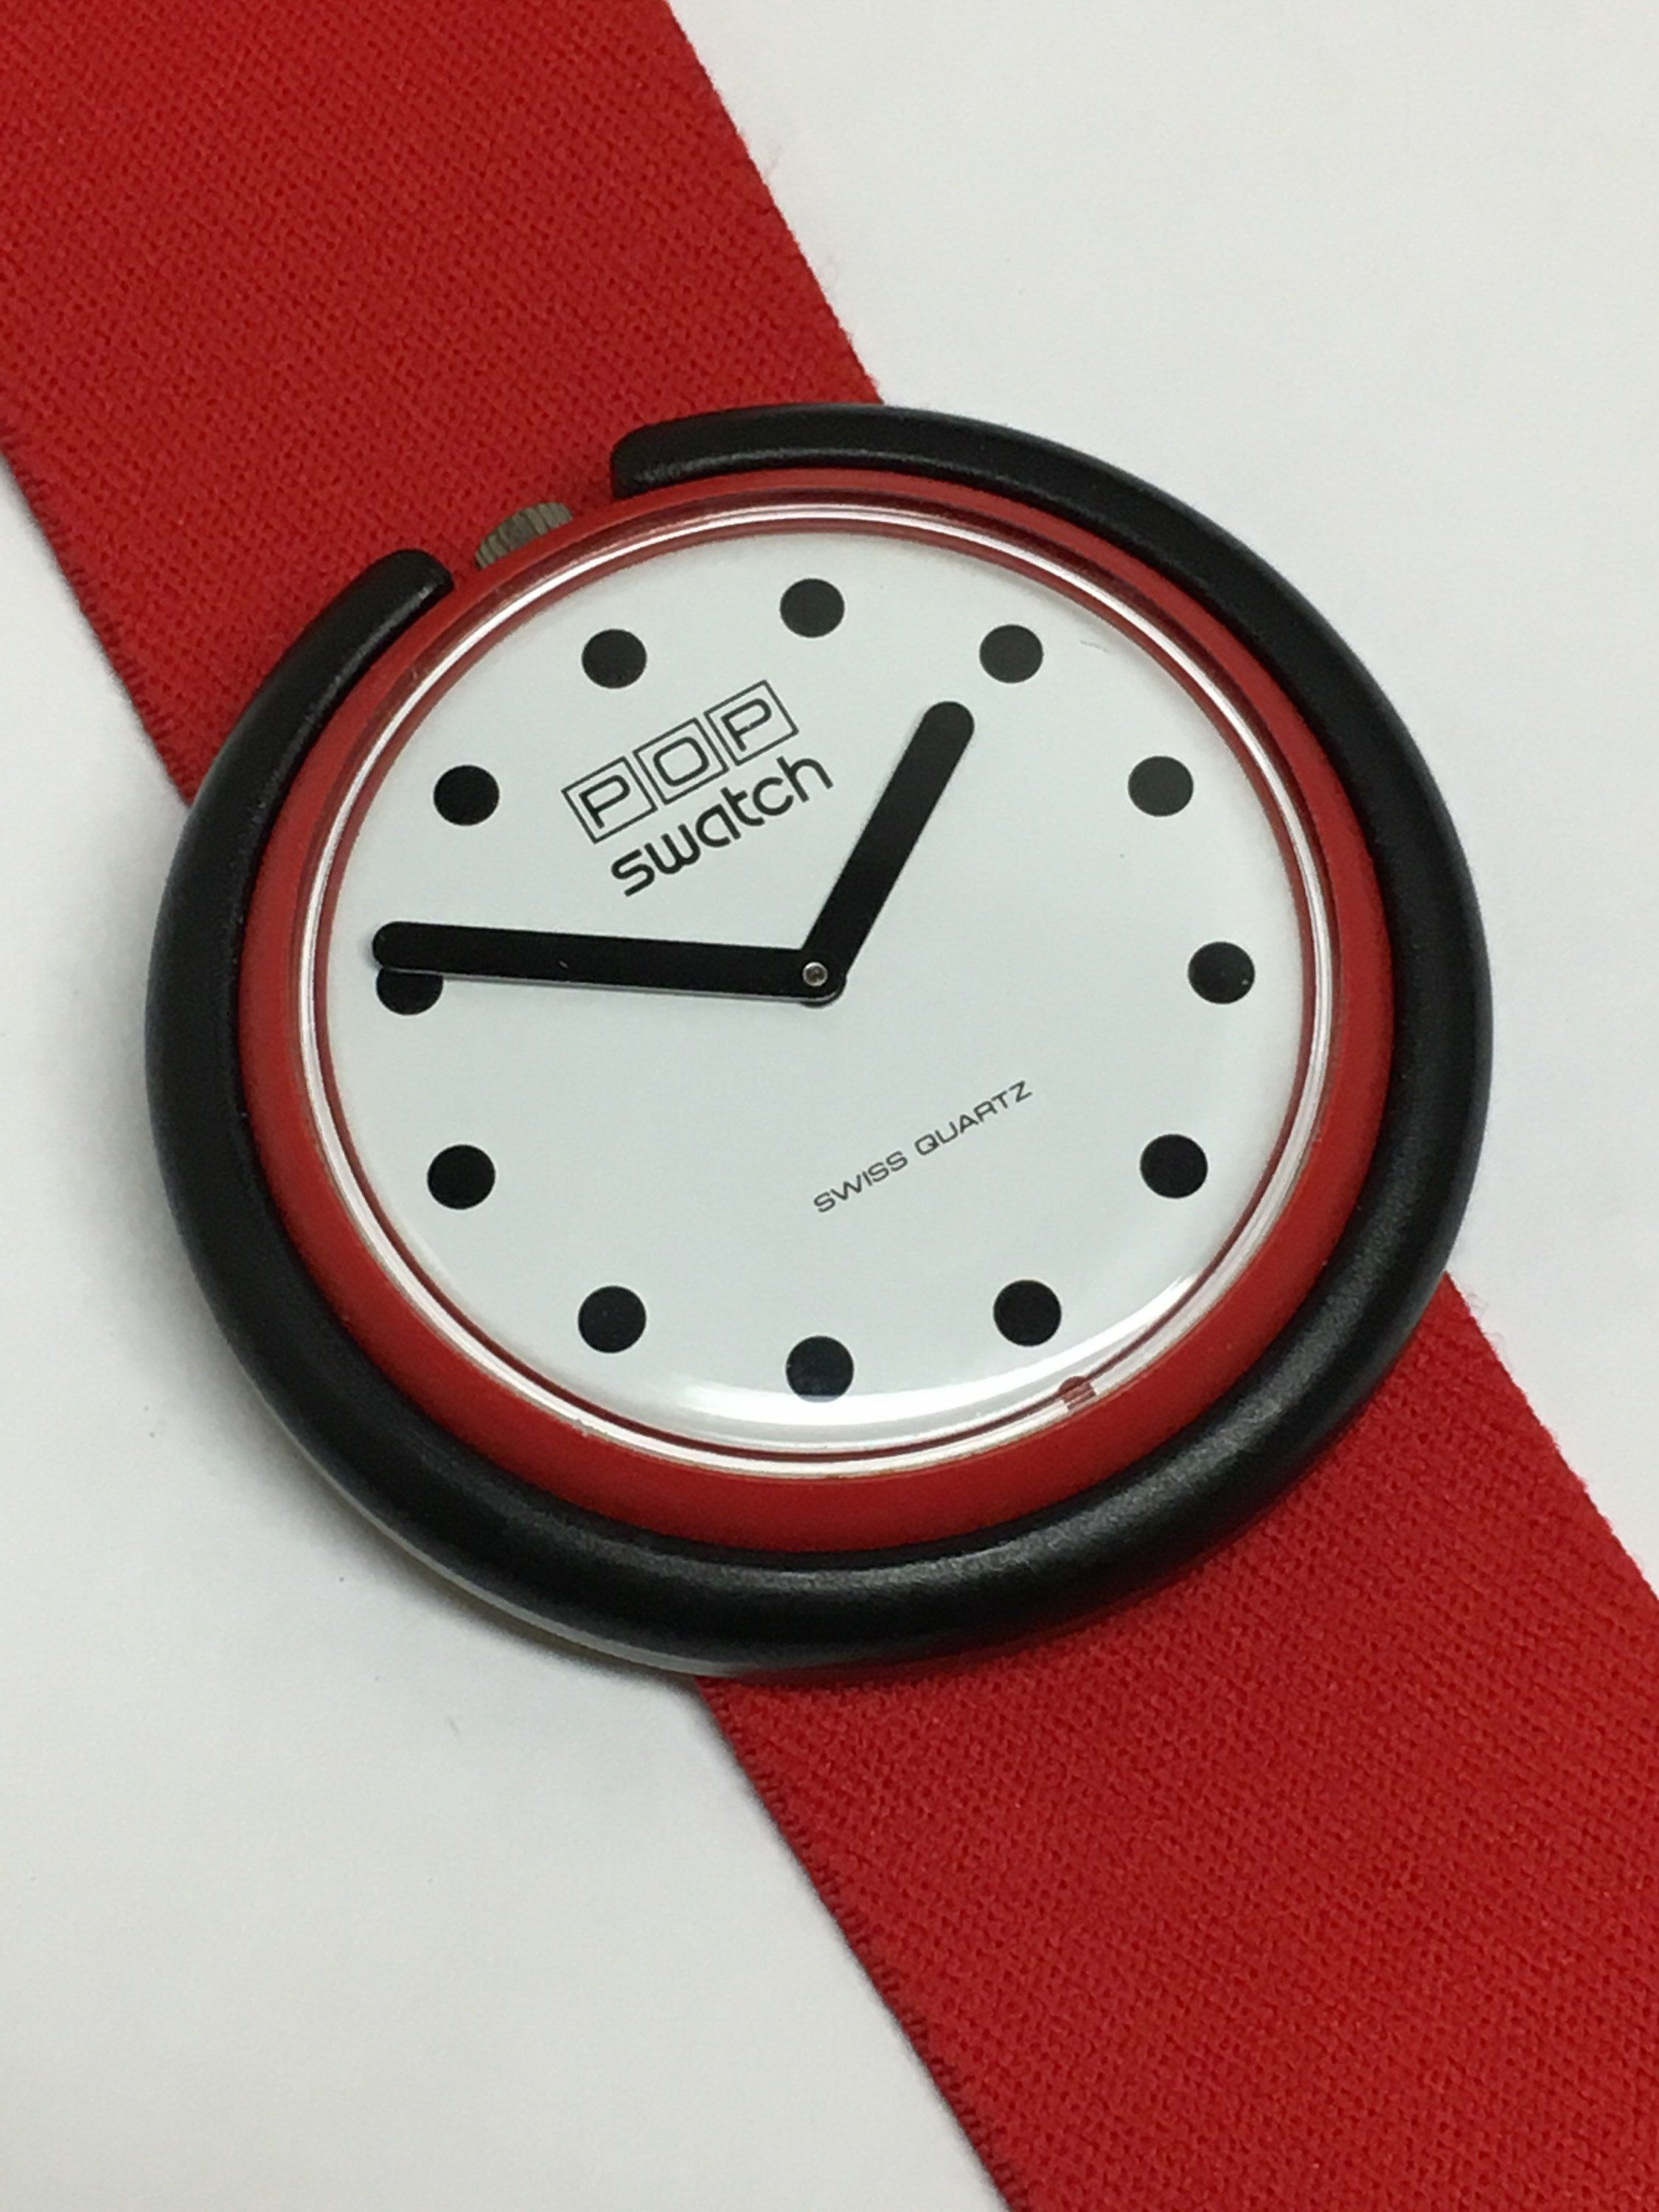 Vintage Pop Swatch Watch Fire Signal Br001 1986 Red Elastic Band